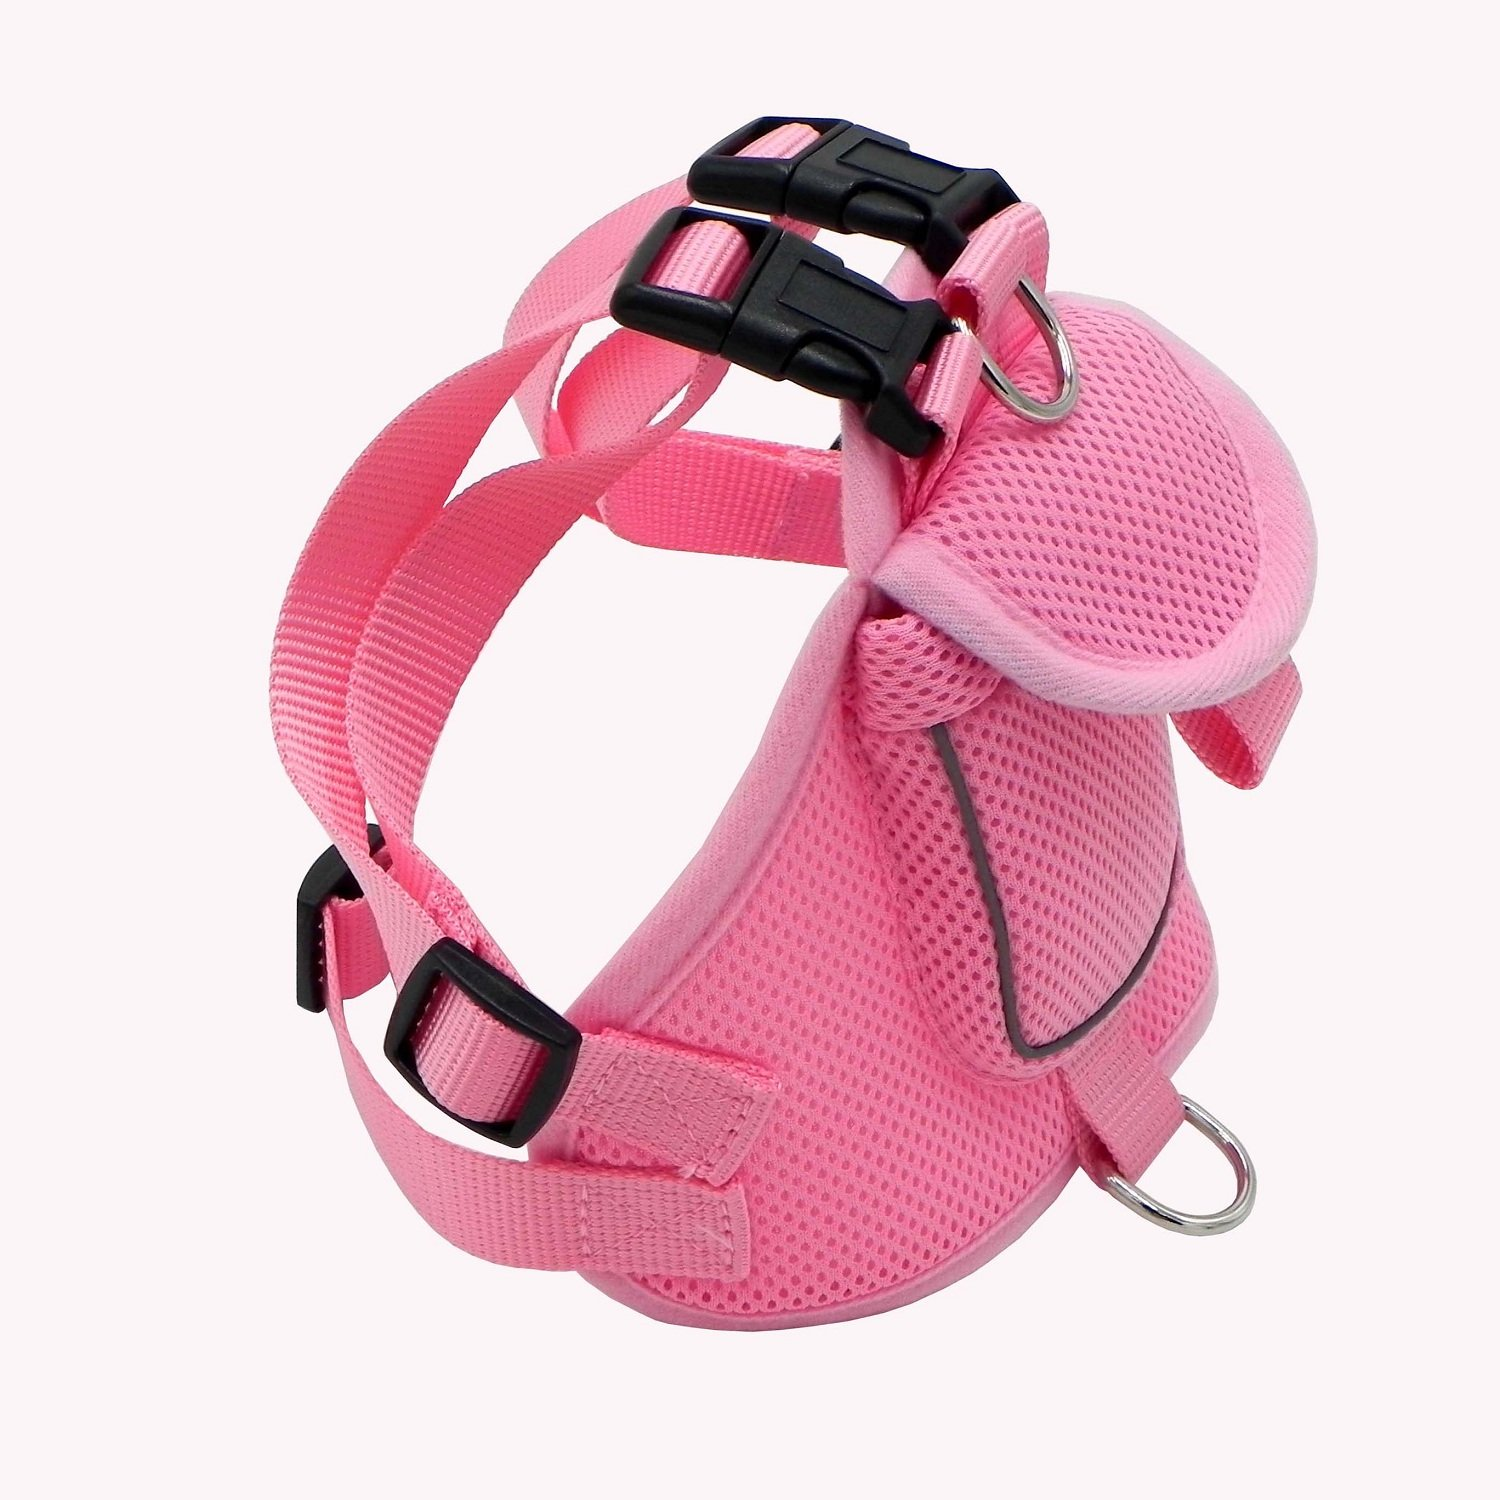 Wellbro Dog Backpack Harness, Small Mesh Dog Vest with Pocket, Soft Padded Pet Saddlebag, Reflective and Adjustable, For Walking, Camping and Hiking (L, Pink)